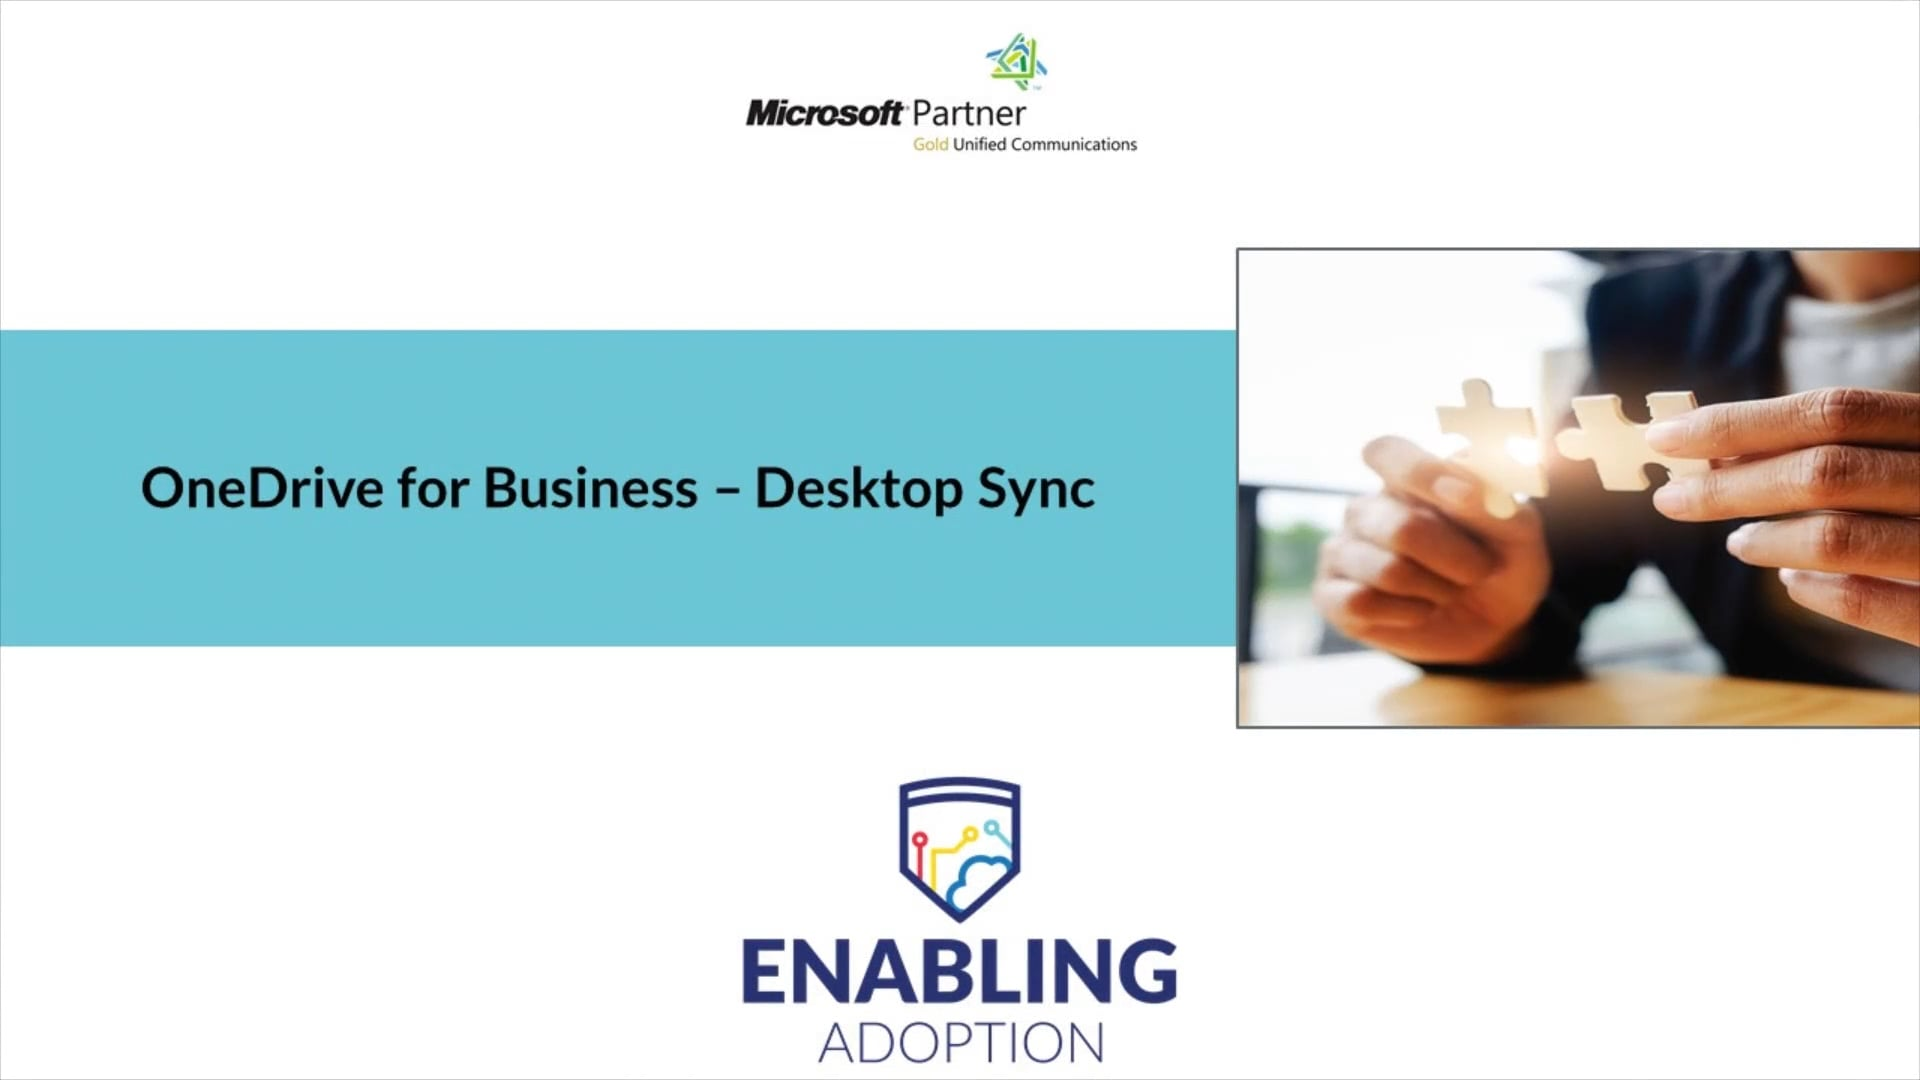 OneDrive for Business - Desktop Sync